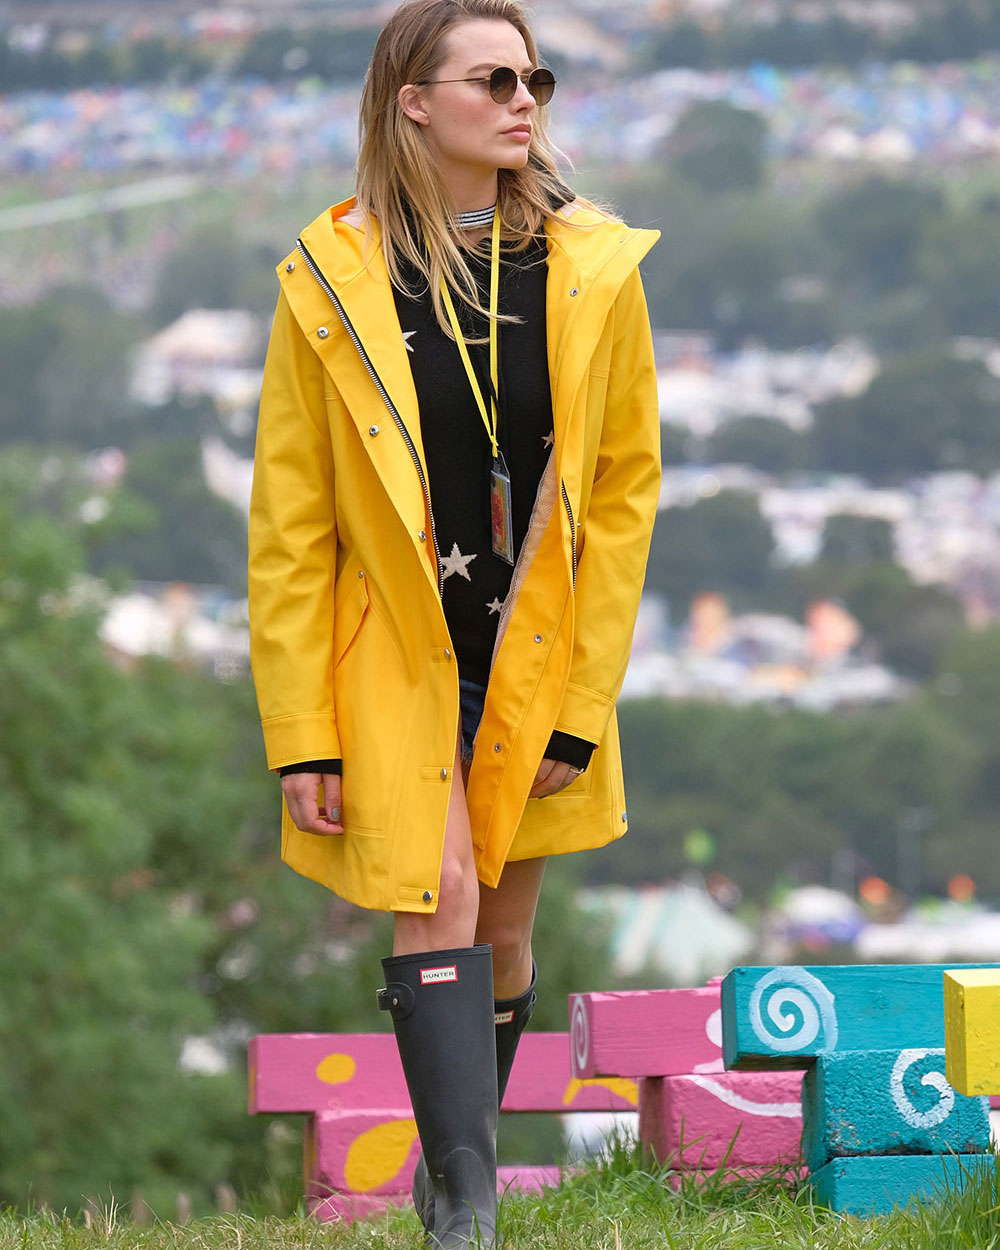 MargotRobbie_Glastonbury_F.jpg